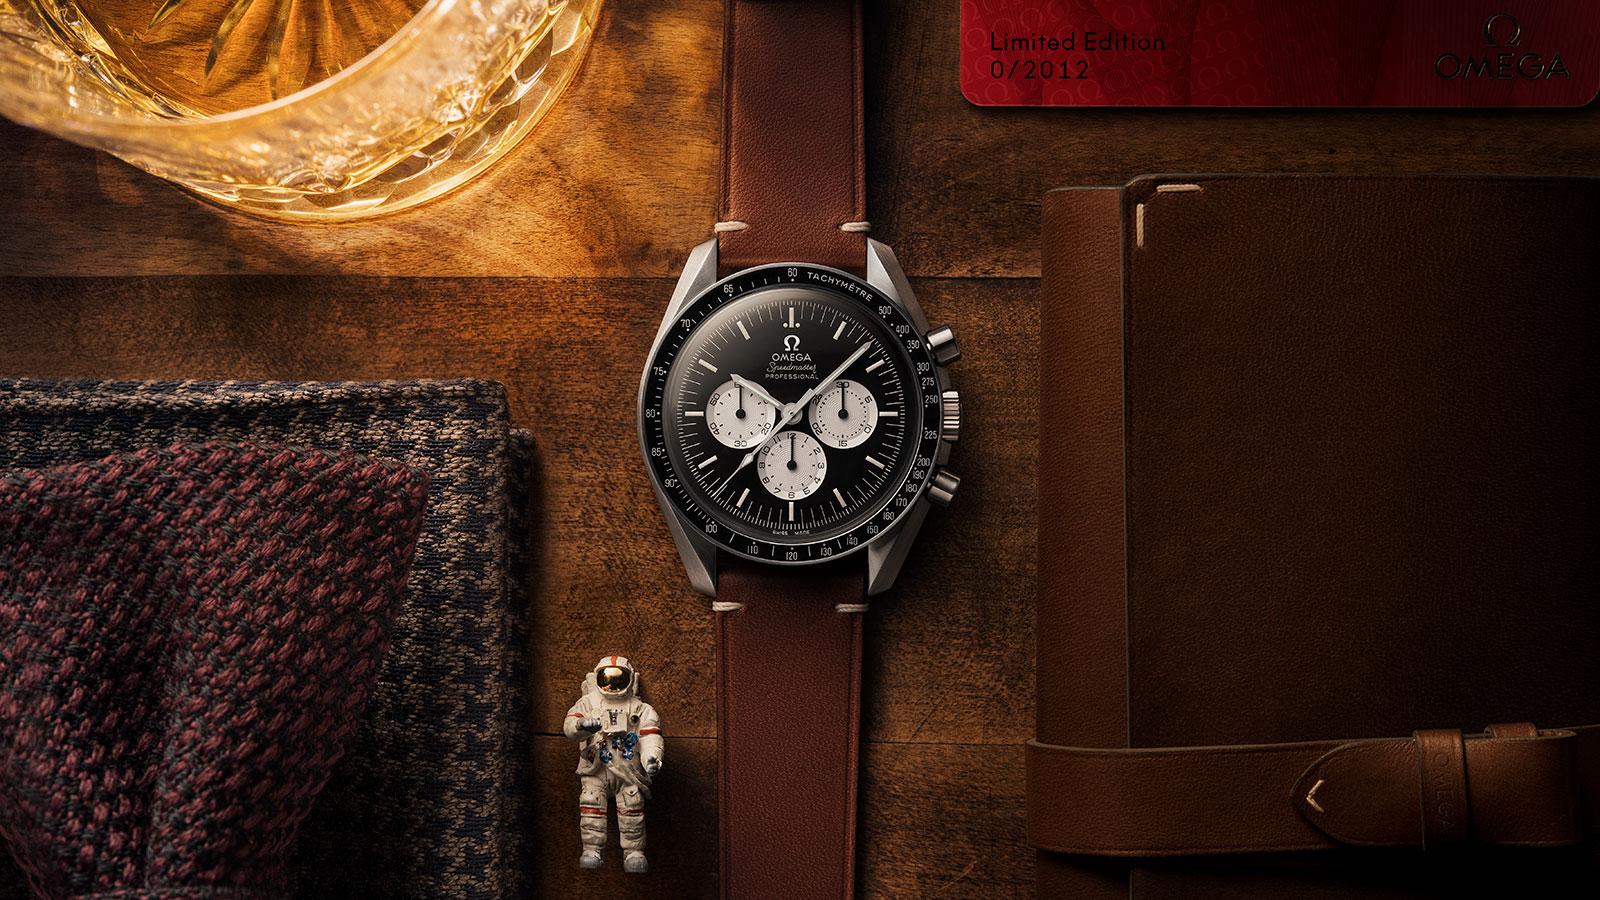 Speedmaster ムーンウォッチ Moonwatch Anniversary Limited Series ウォッチ - 311.32.42.30.01.001